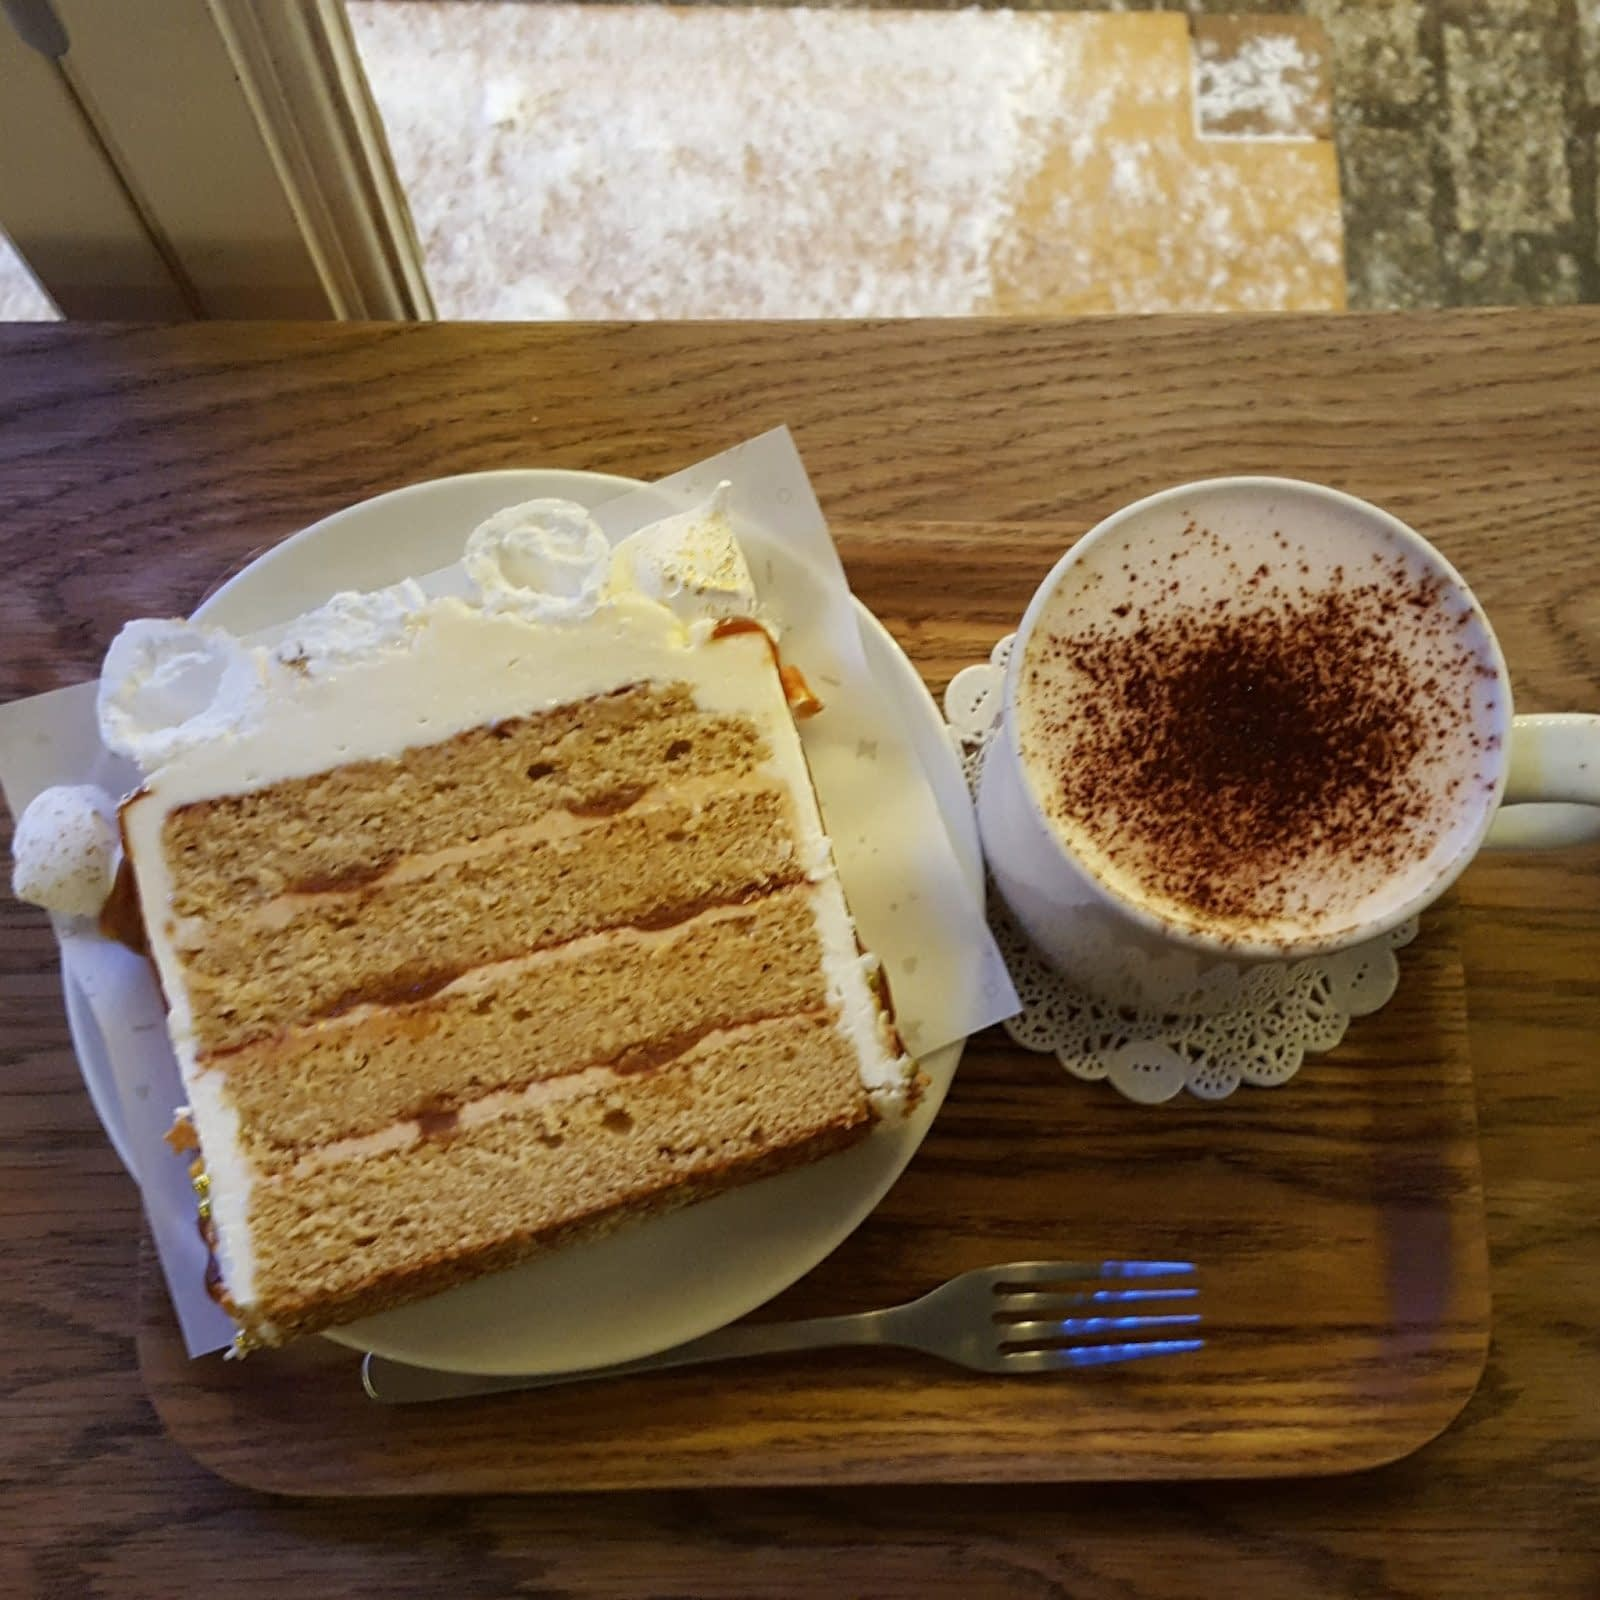 Best Hidden Bakeries in Central London for Cakes 2